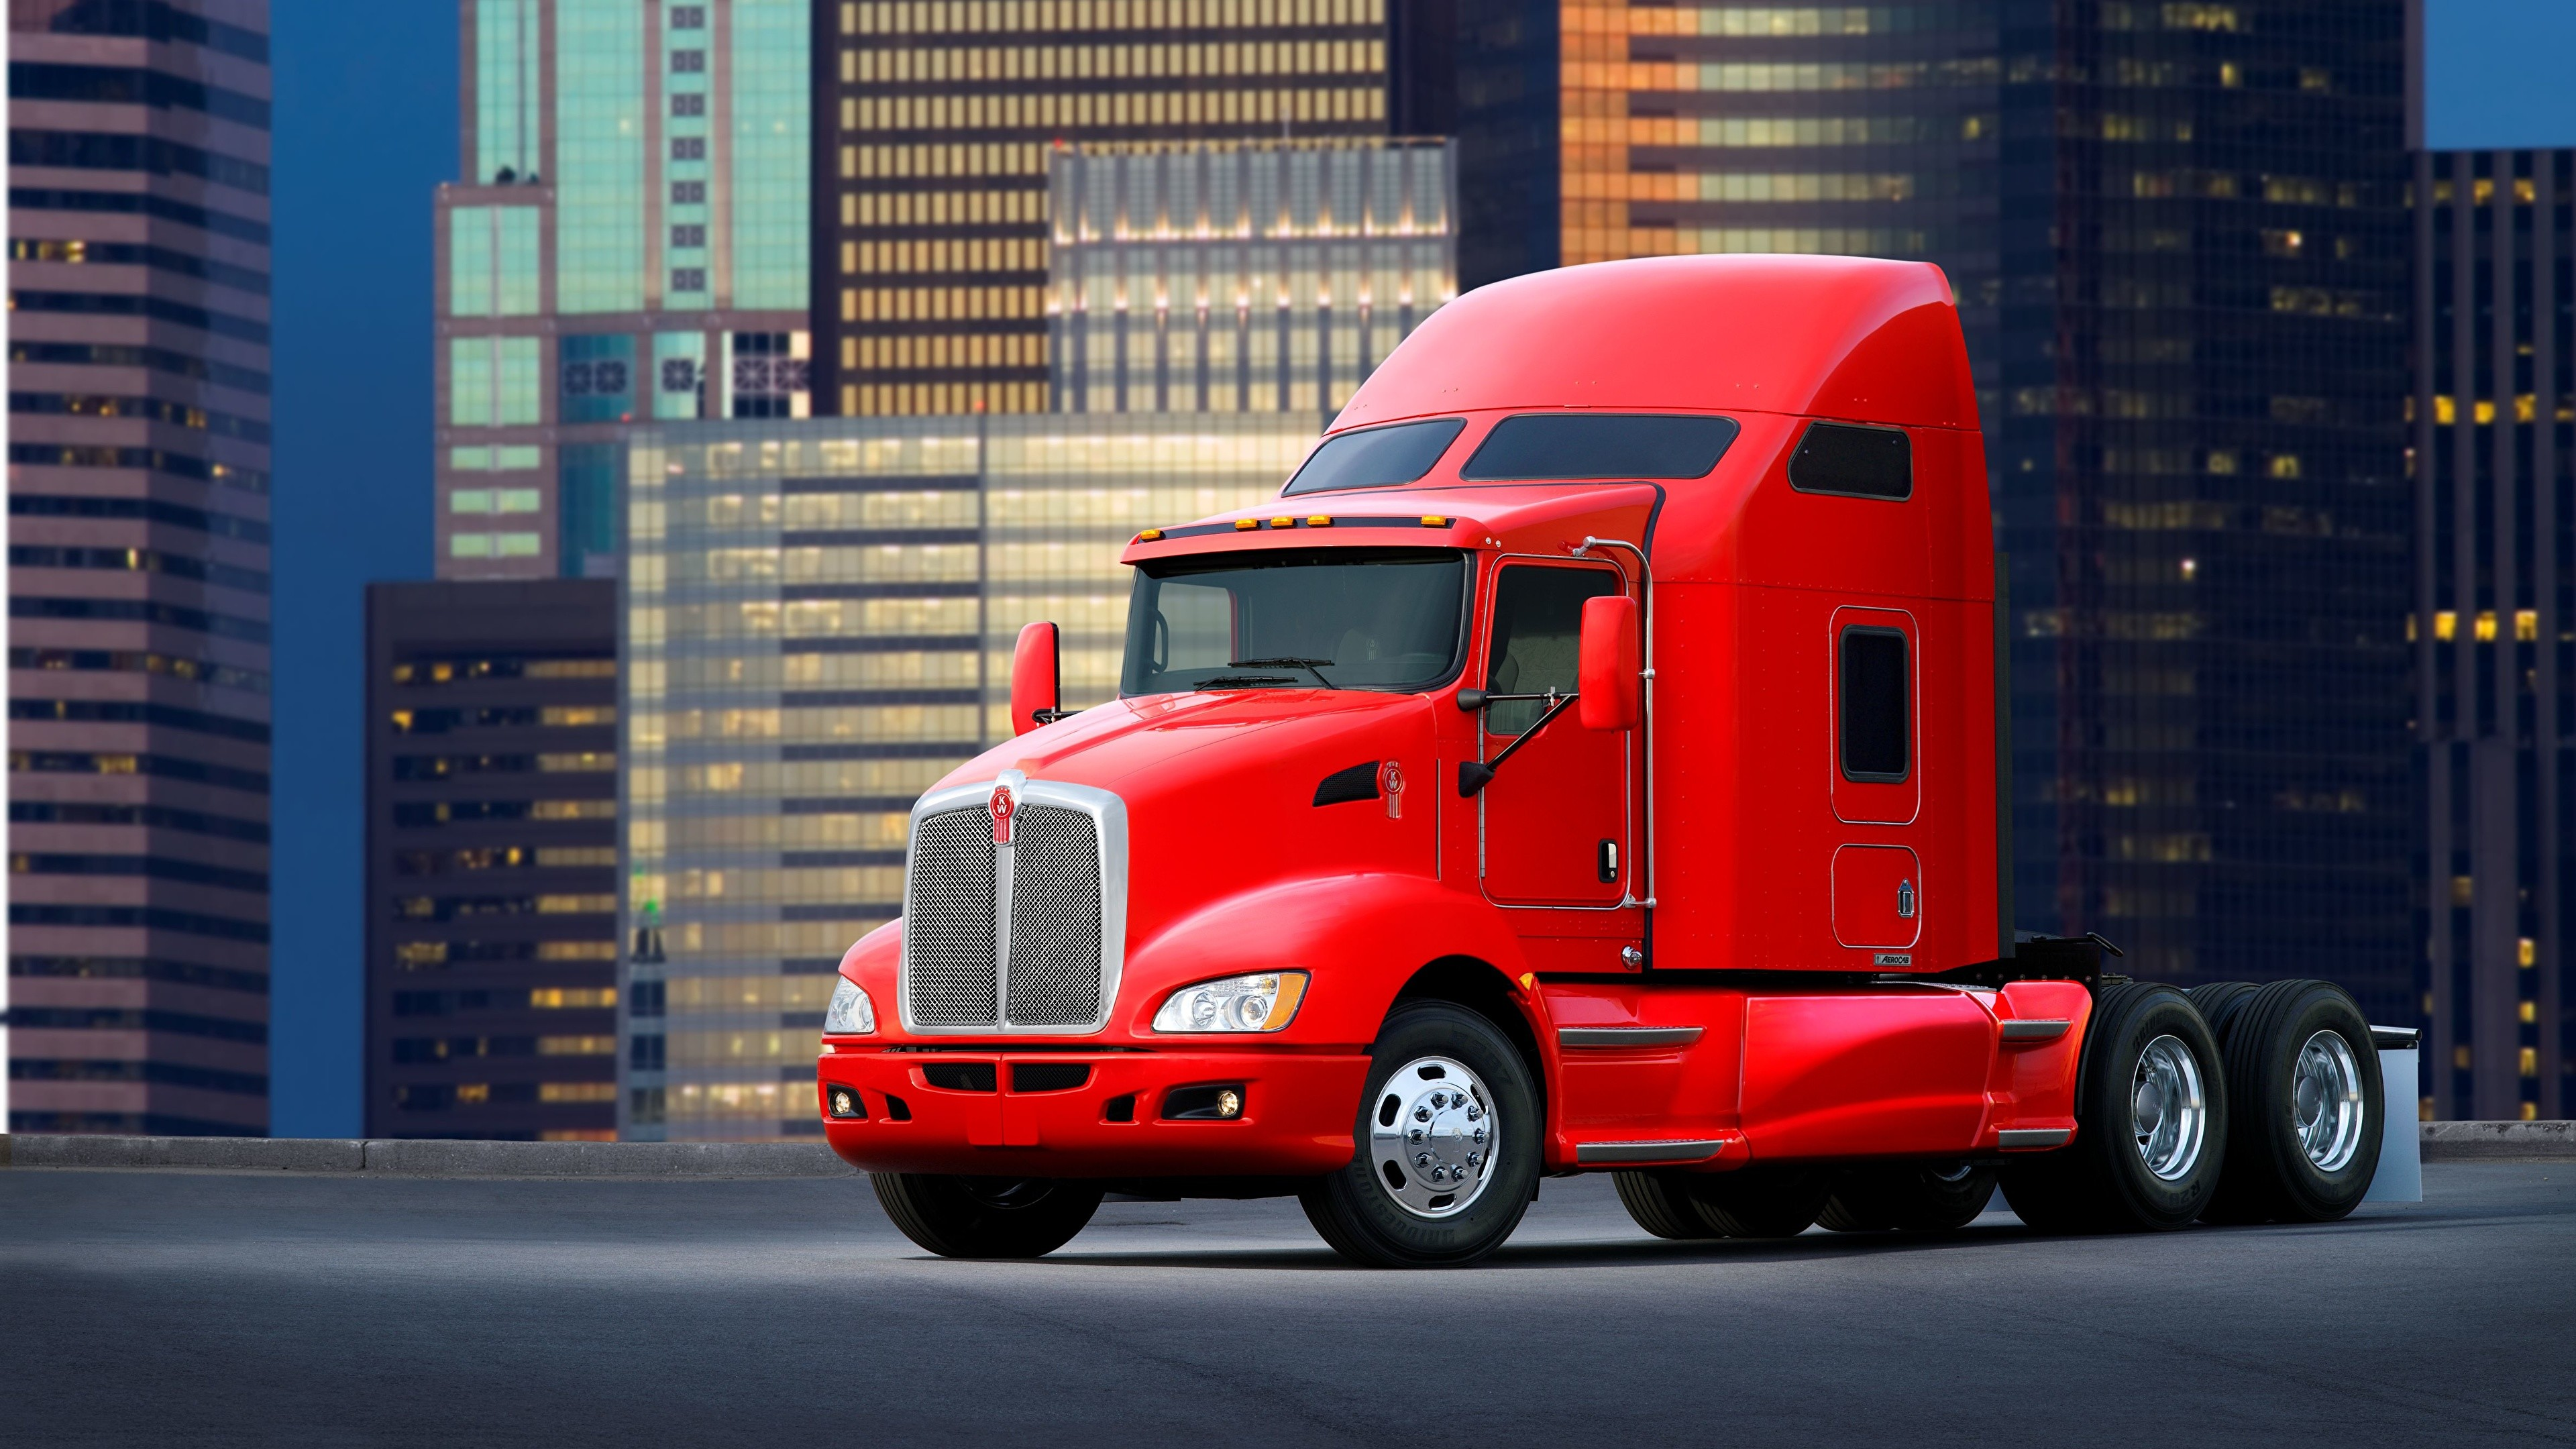 3840x2160 Wallpaper Trucks Kenworth automobile  lorry auto Cars